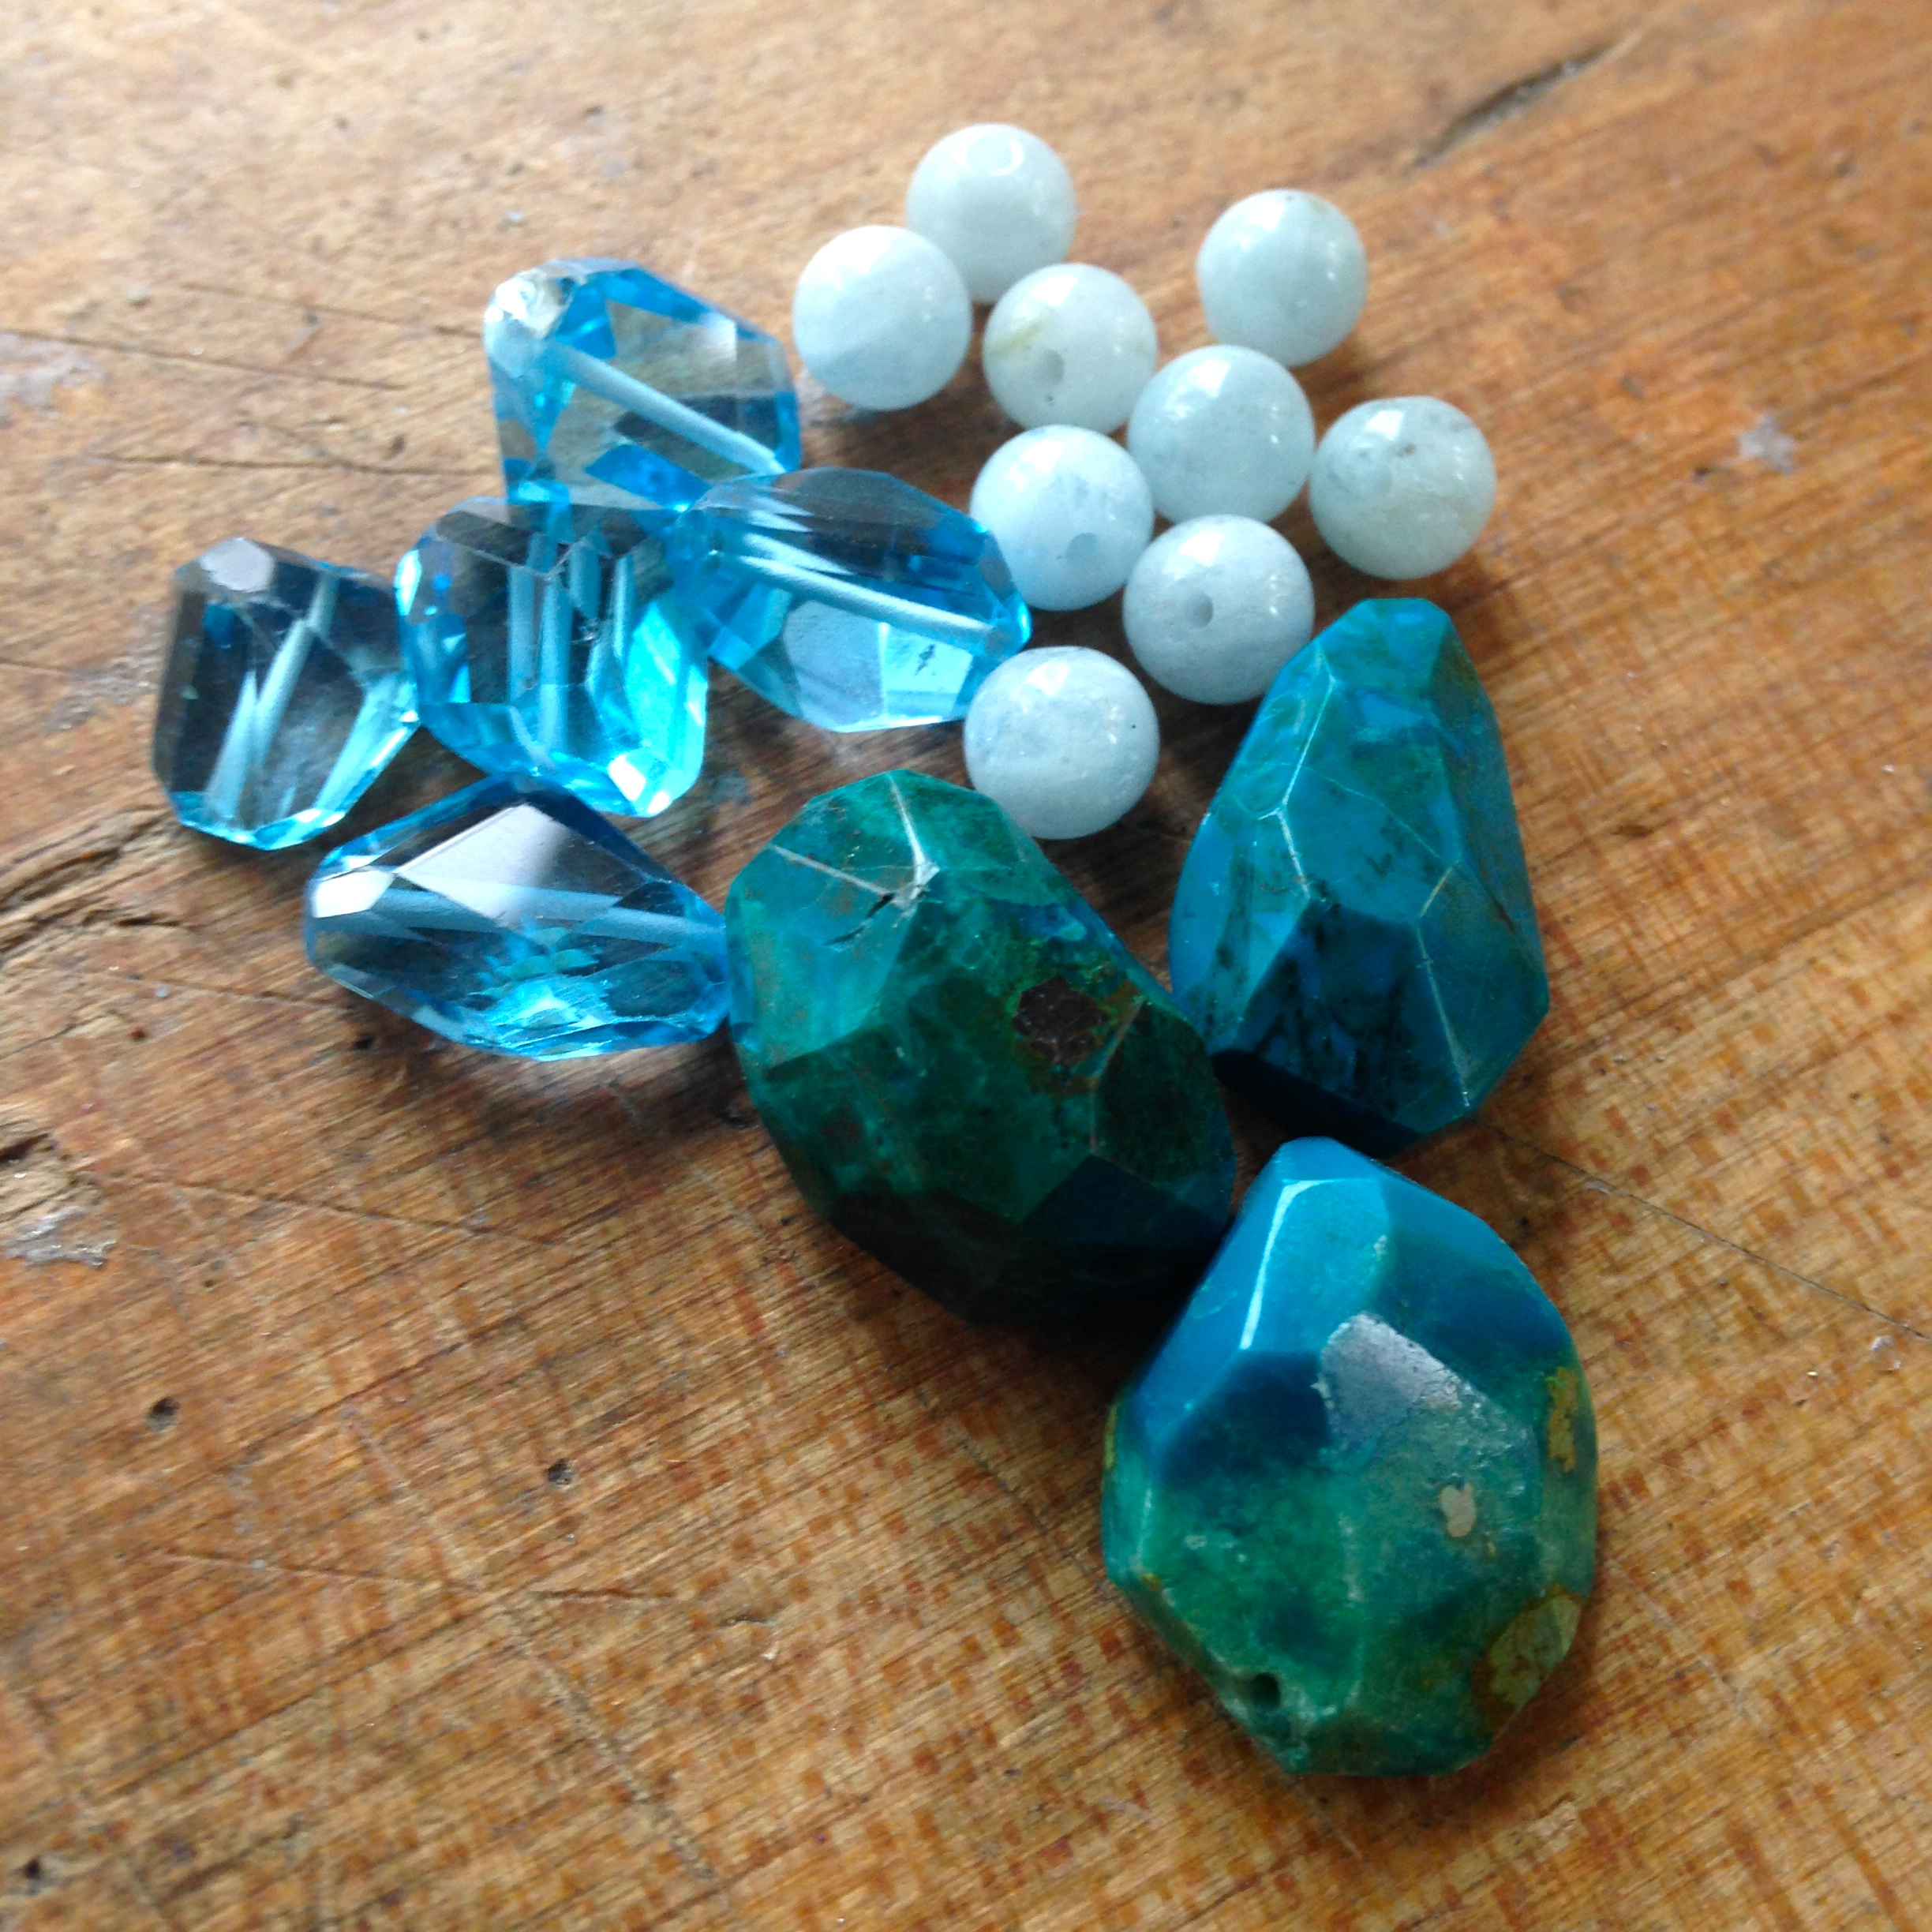 Blue topaz, turquoise and kyanite